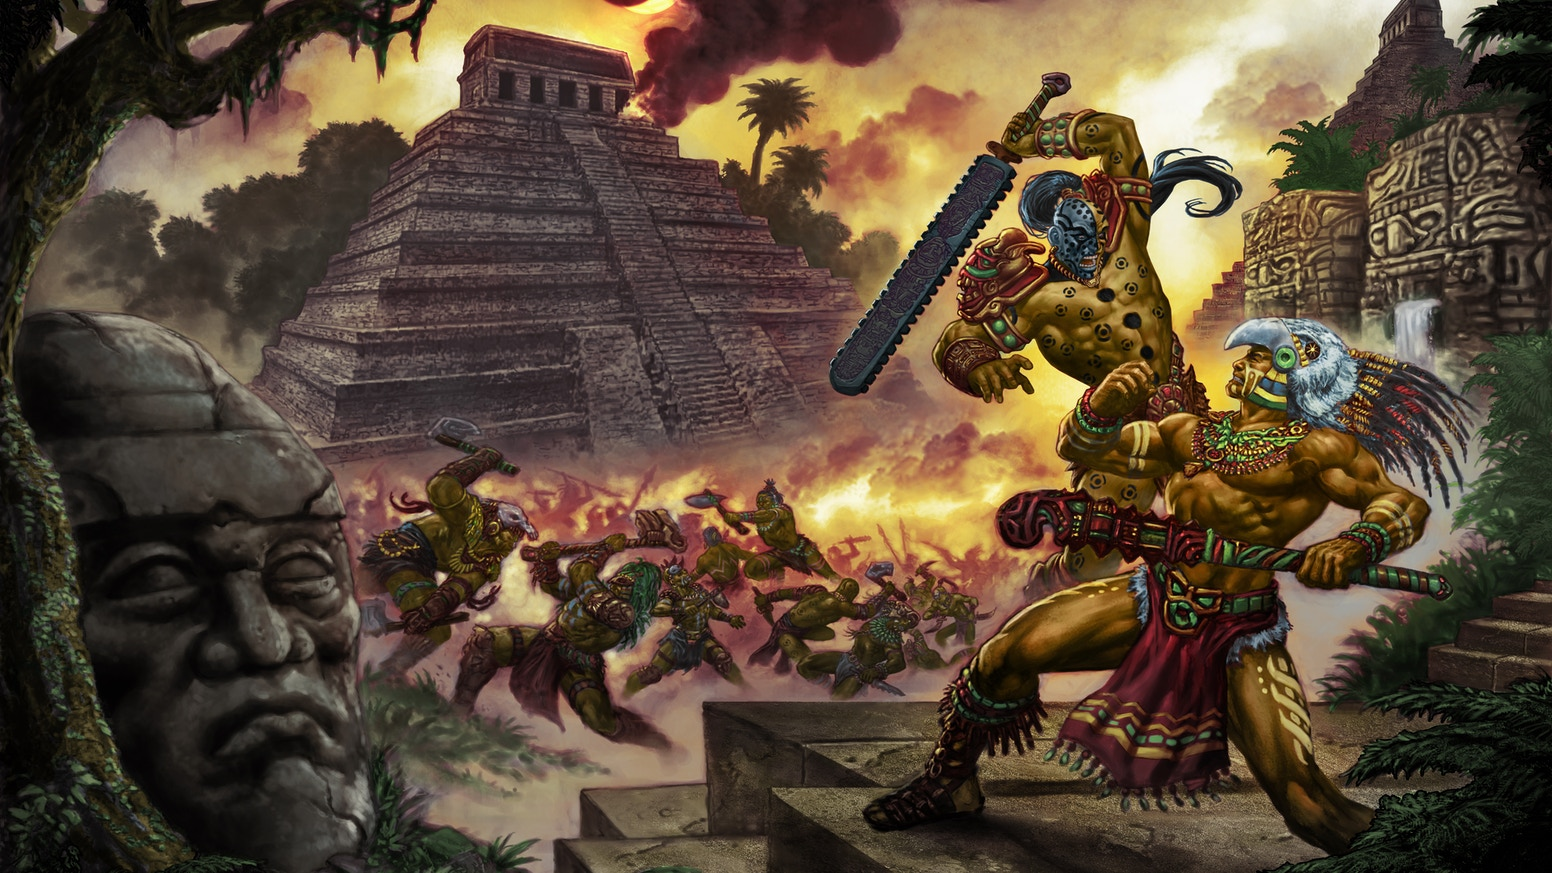 With a basis in mythology and fact, this tabletop RPG explores ancient south American history with miniature terrain, maps & adventure!